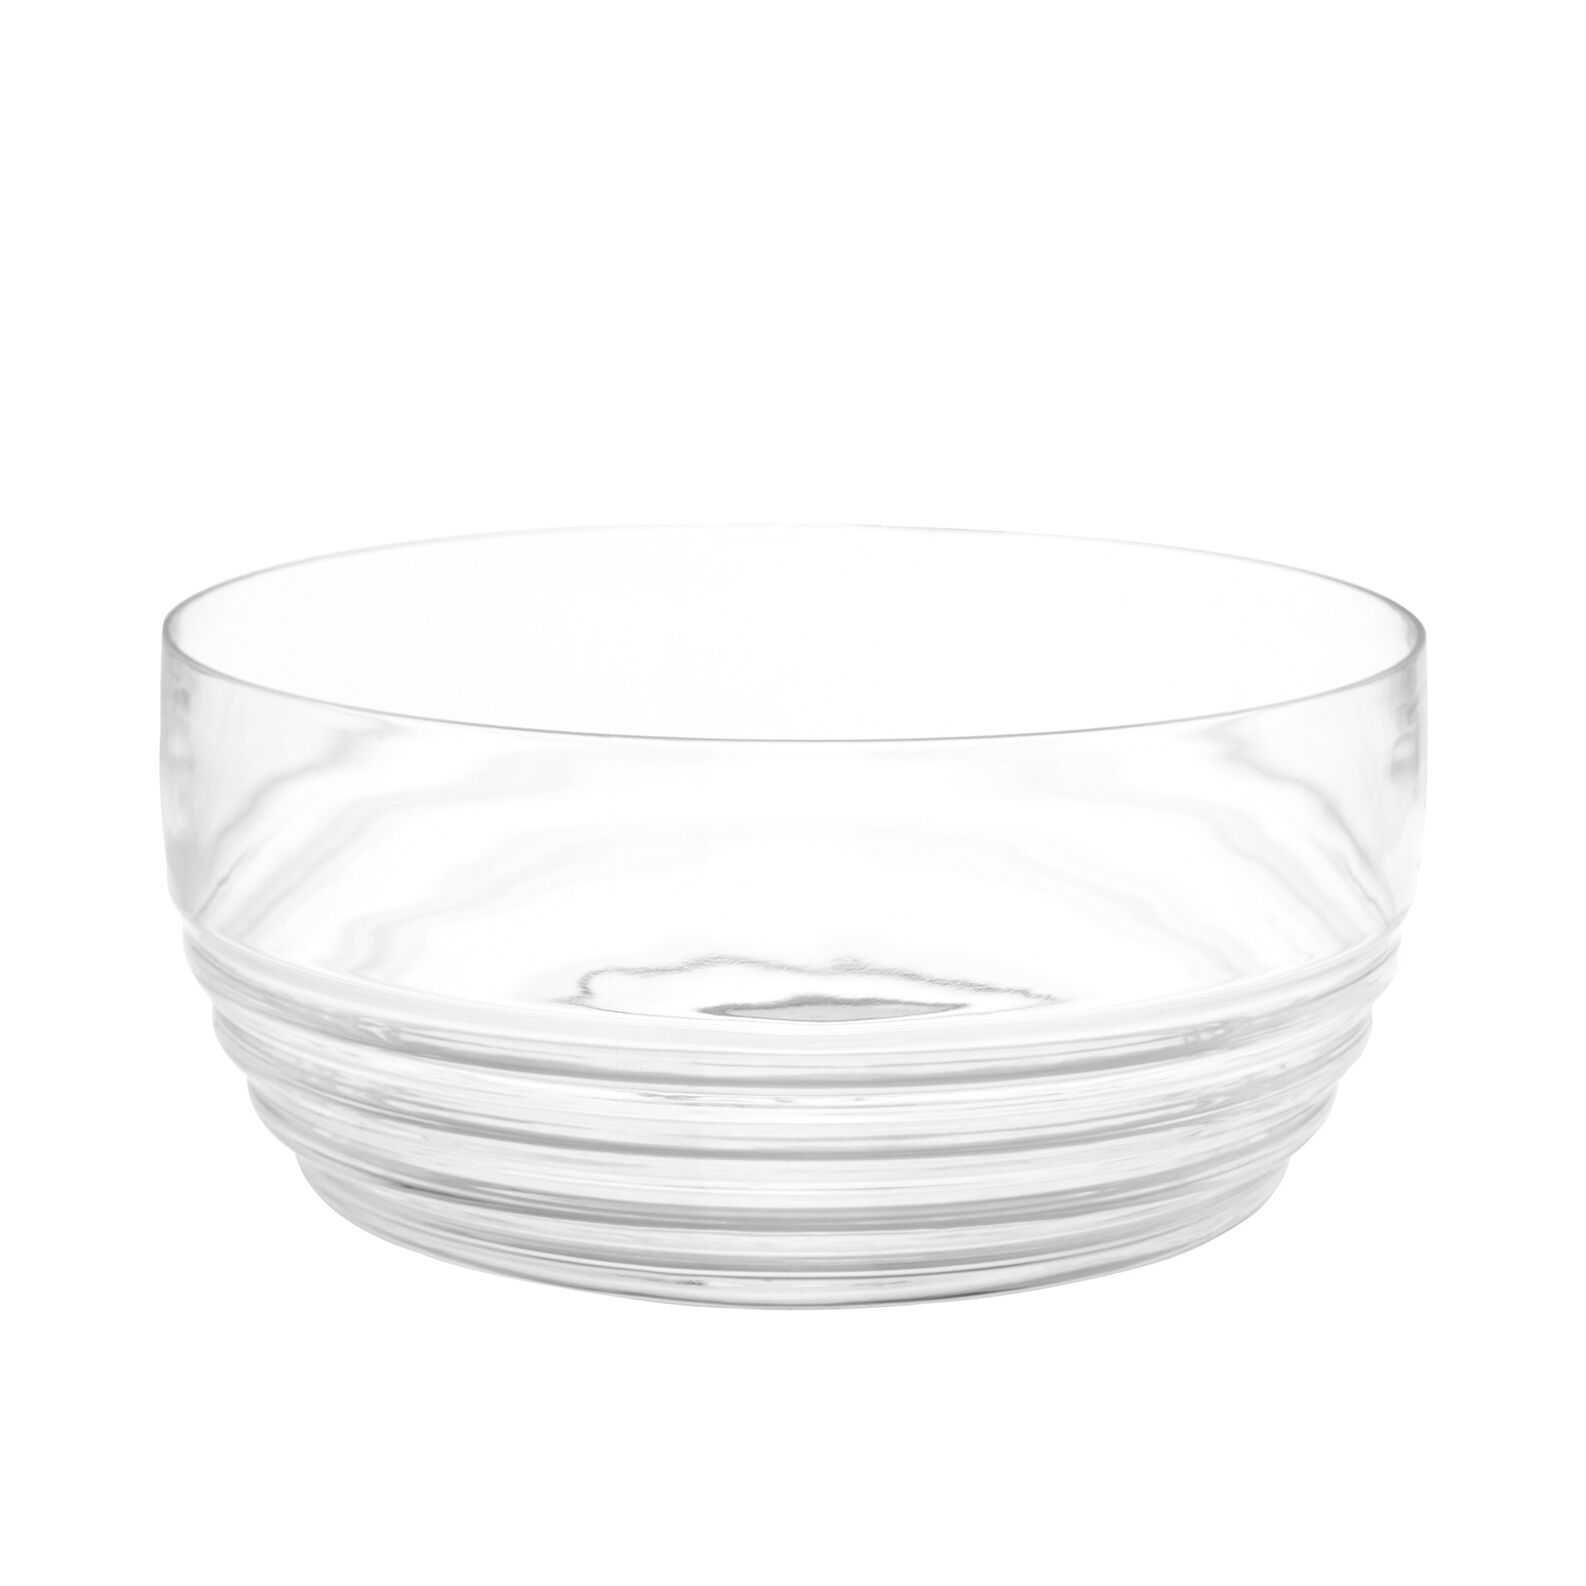 MS plastic salad bowl